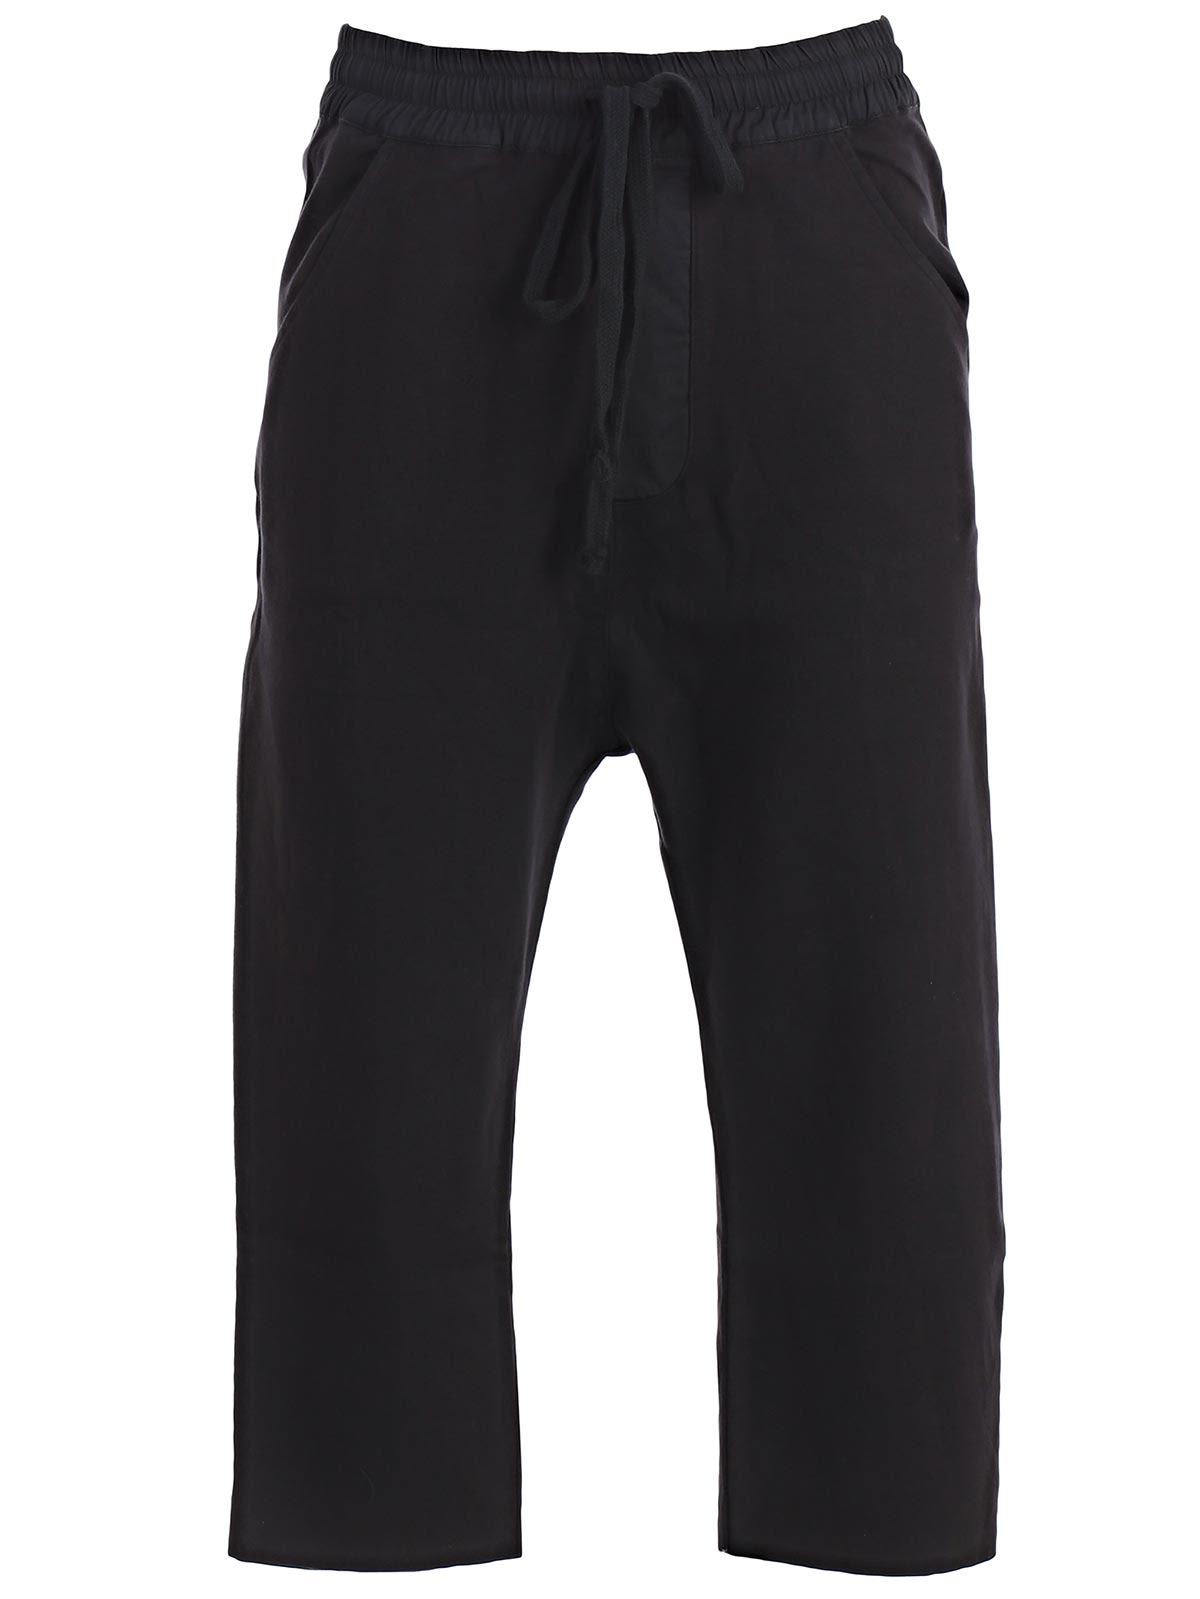 CROPPED SWEATPANTS from Italist.com